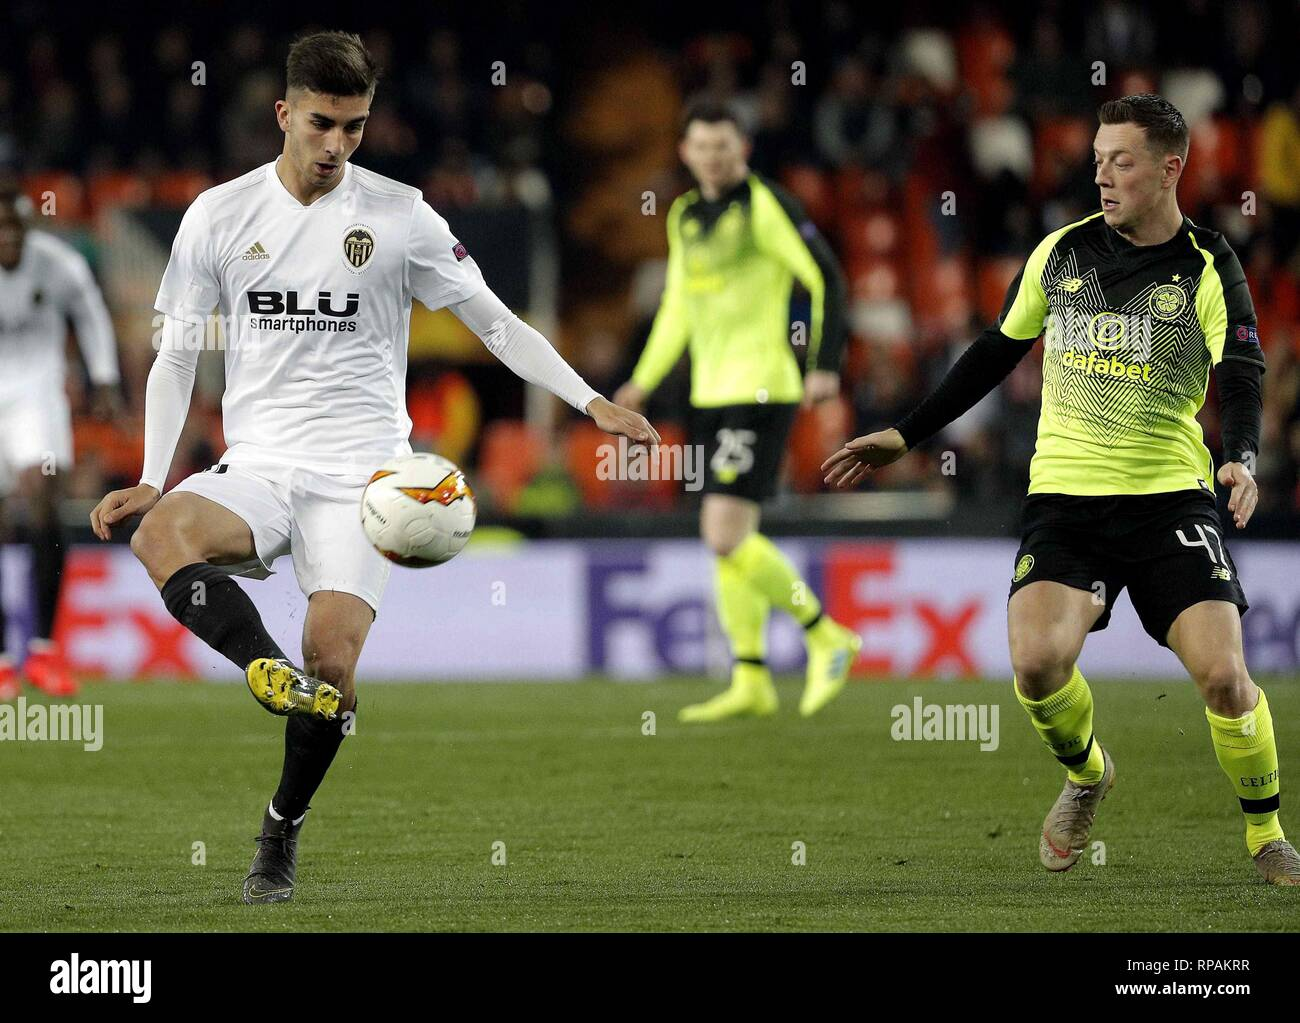 Valencia CF's Ferran Torres (L) in action against Celtic Glasgow's Callum Mcgregor (R) during a UEFA Europa League round of 32, second leg soccer match between Valencia CF and Celtic Glasgow at Mestalla stadium in Valencia, eastern Spain, 21 February 2019. EFE/ Manuel Bruque - Stock Image